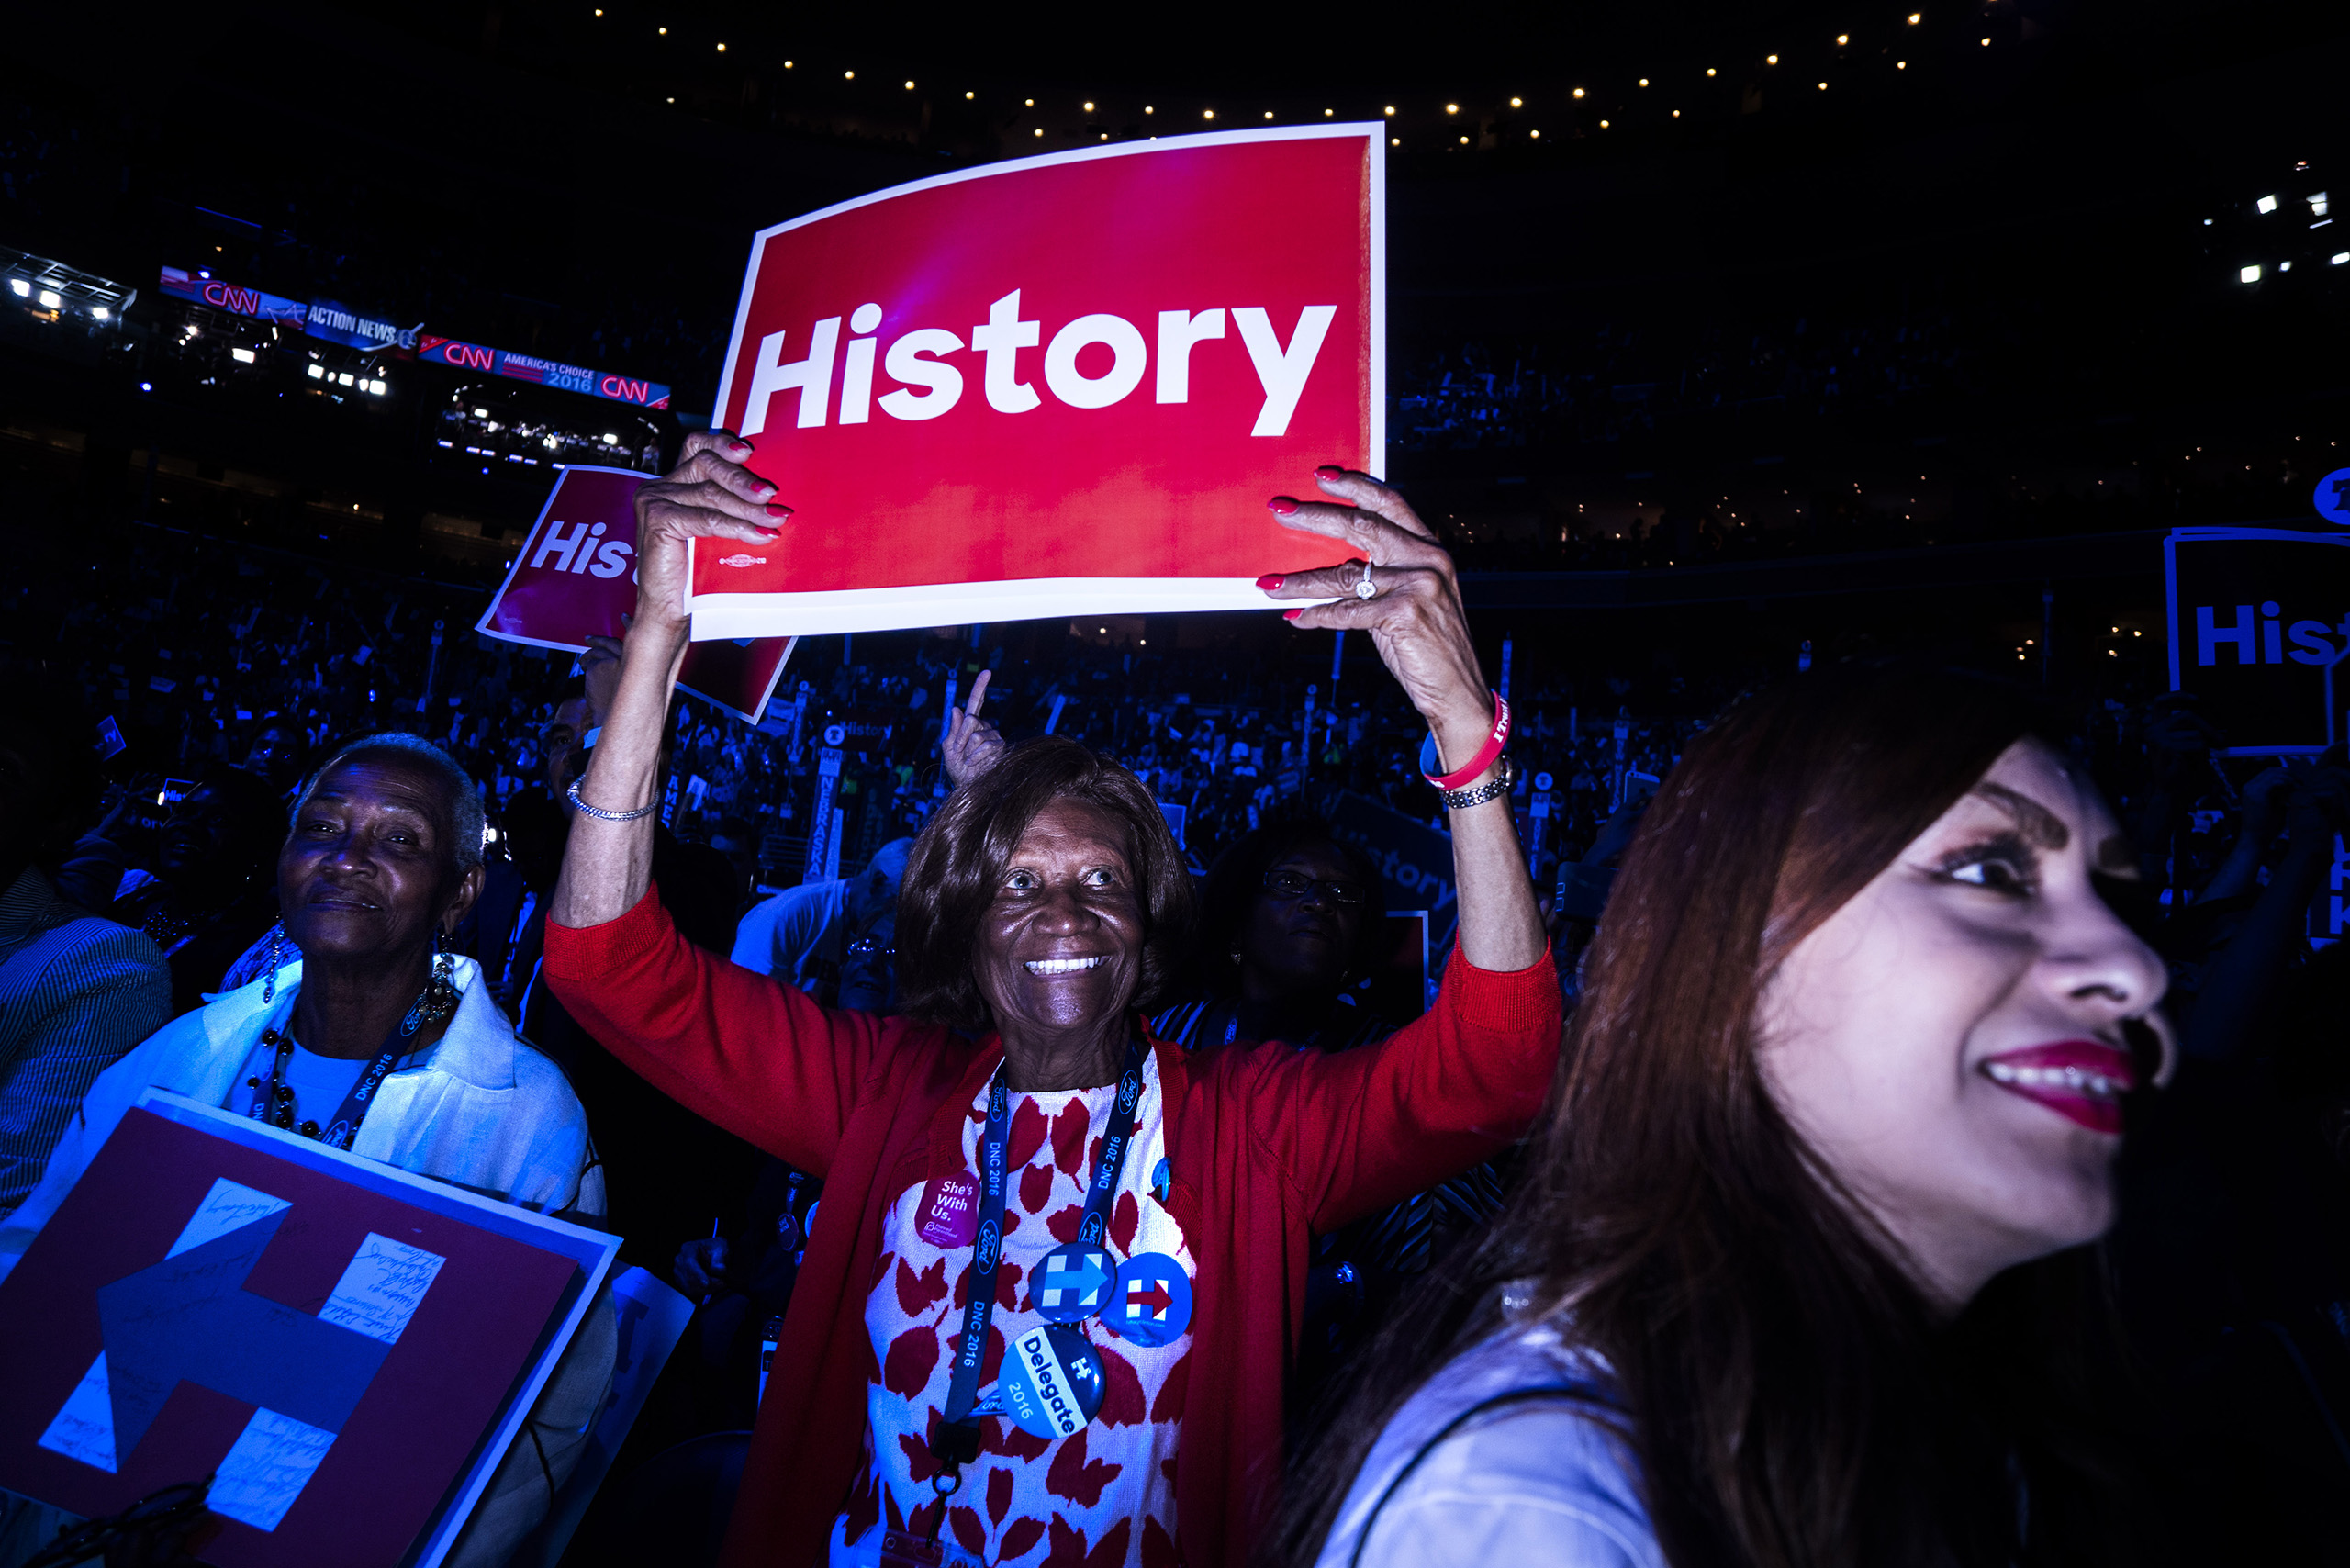 Scenes from the second day of the Democratic National Convention at the Wells Fargo Center, July 26, 2016 in Philadelphia, Pennsylvania.